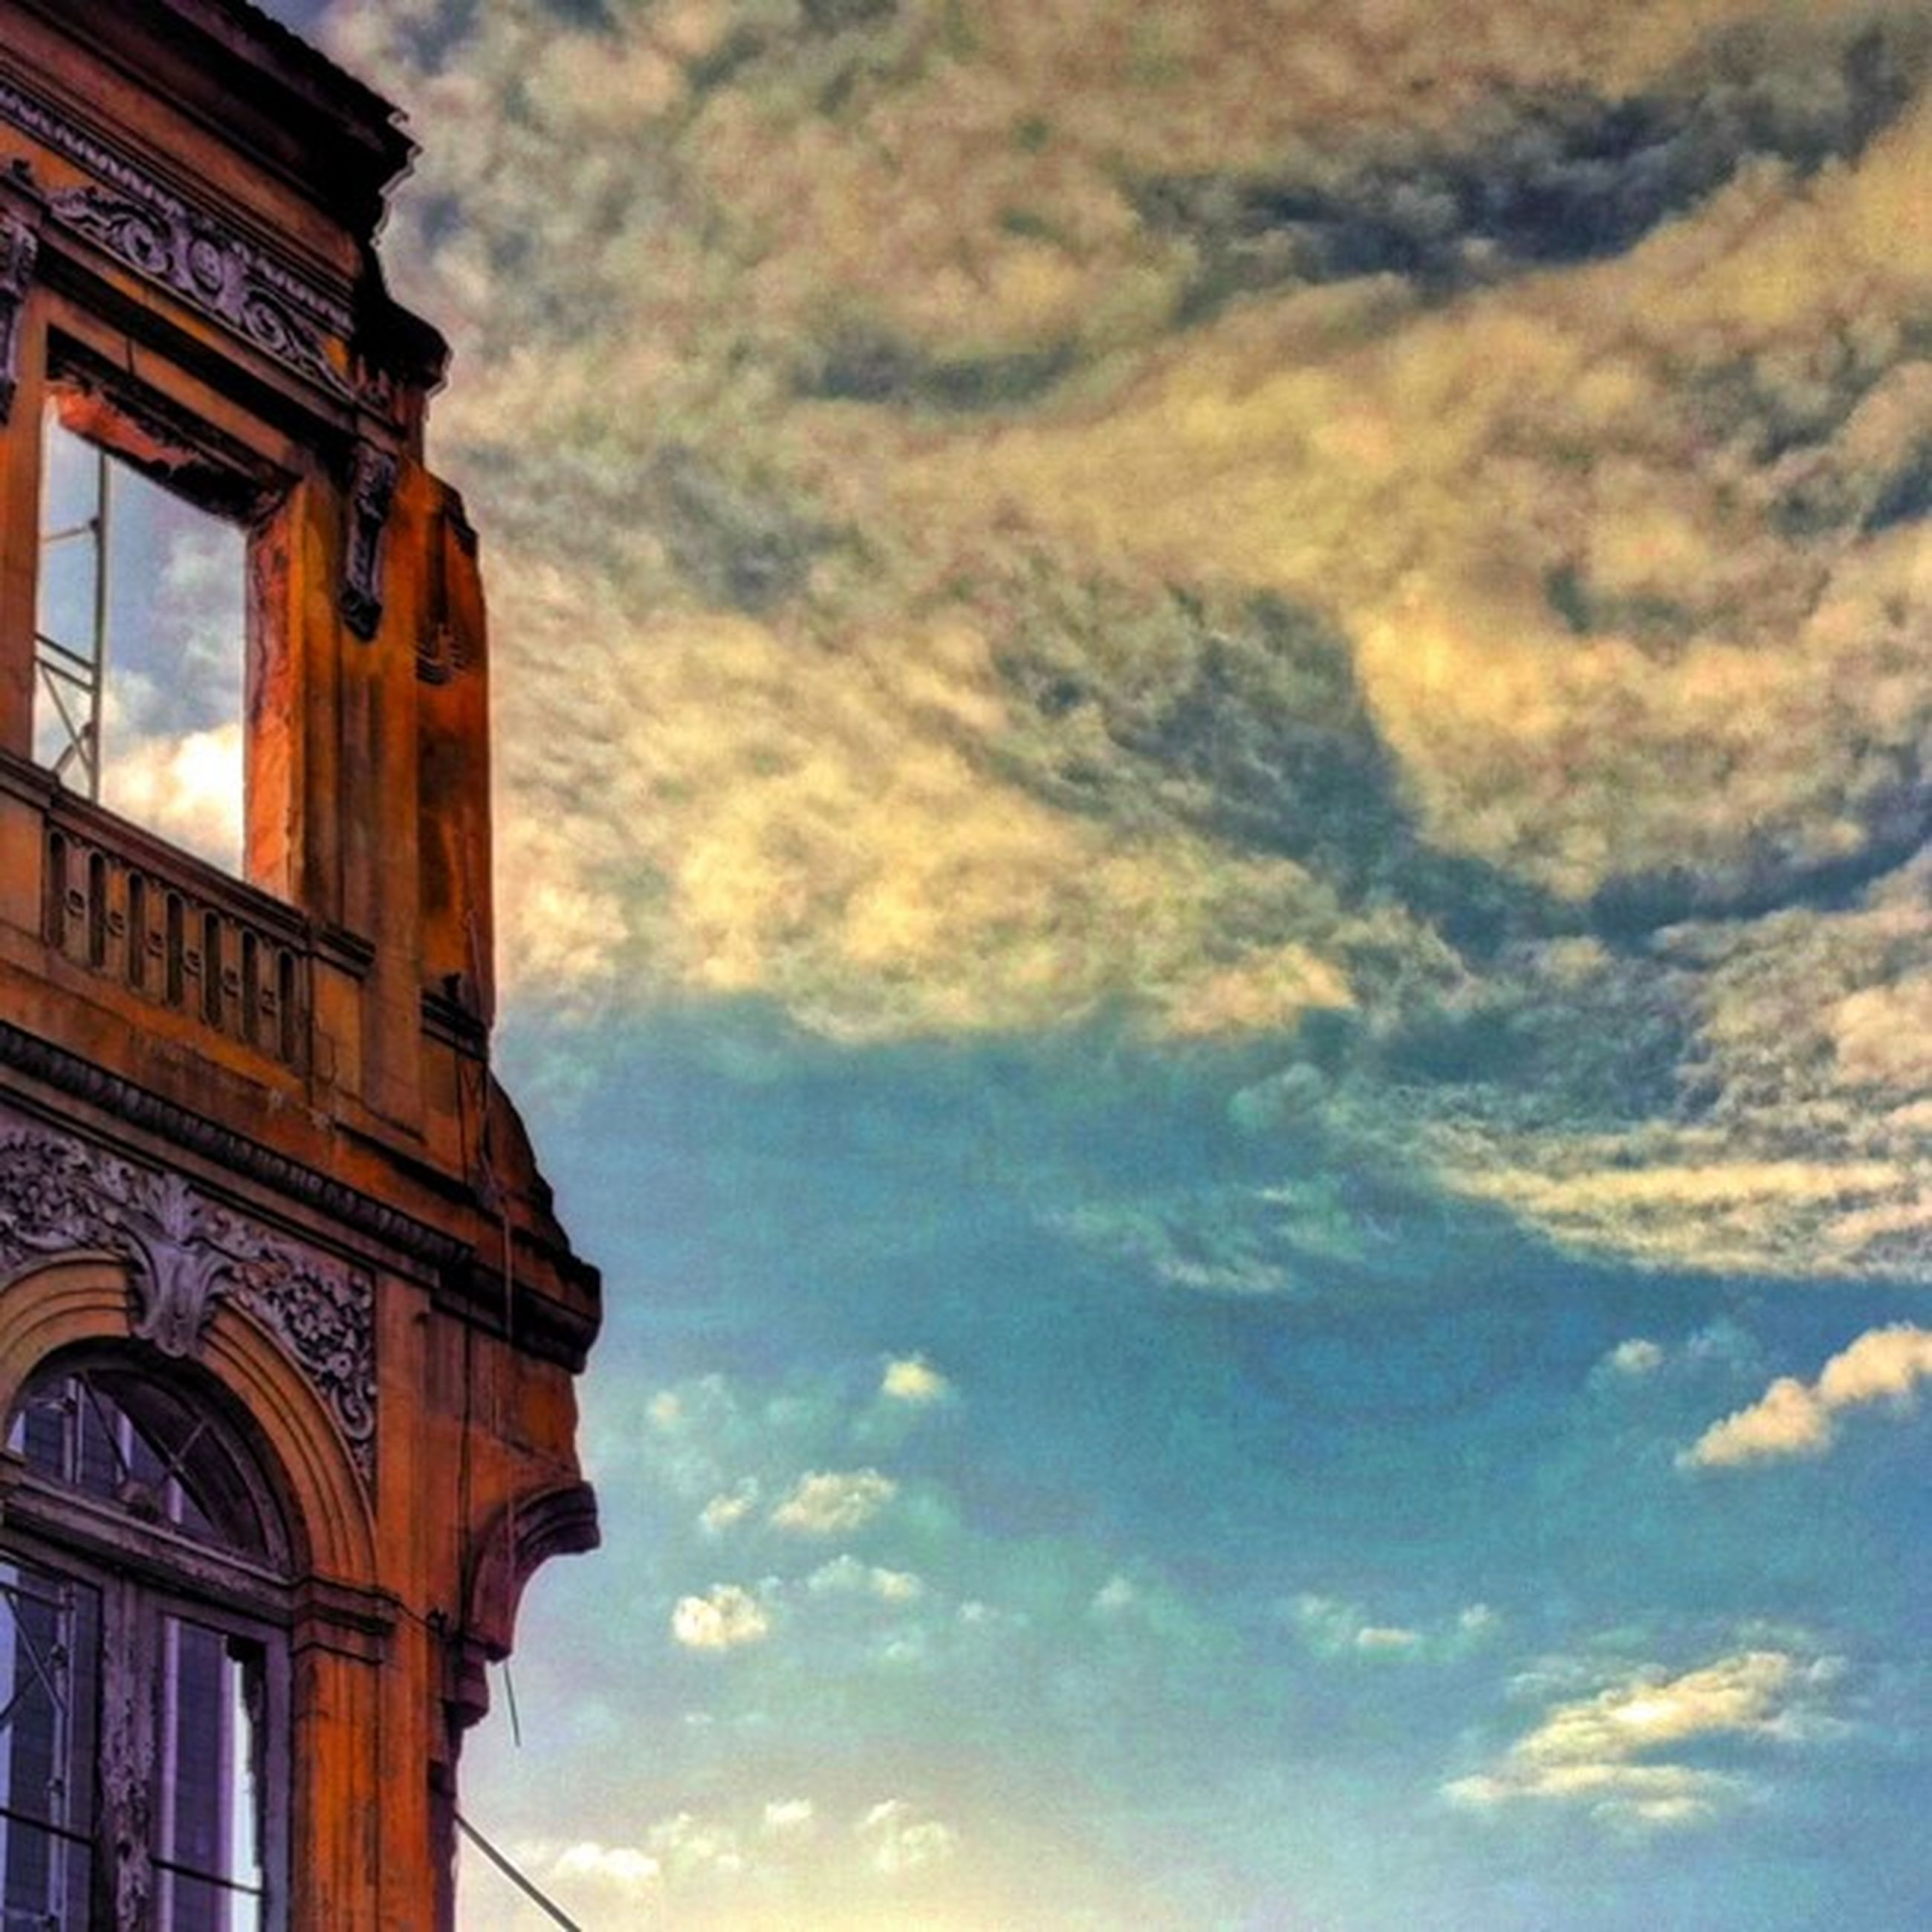 architecture, built structure, low angle view, sky, building exterior, cloud - sky, window, cloudy, cloud, building, high section, no people, outdoors, day, part of, residential structure, arch, facade, city, house